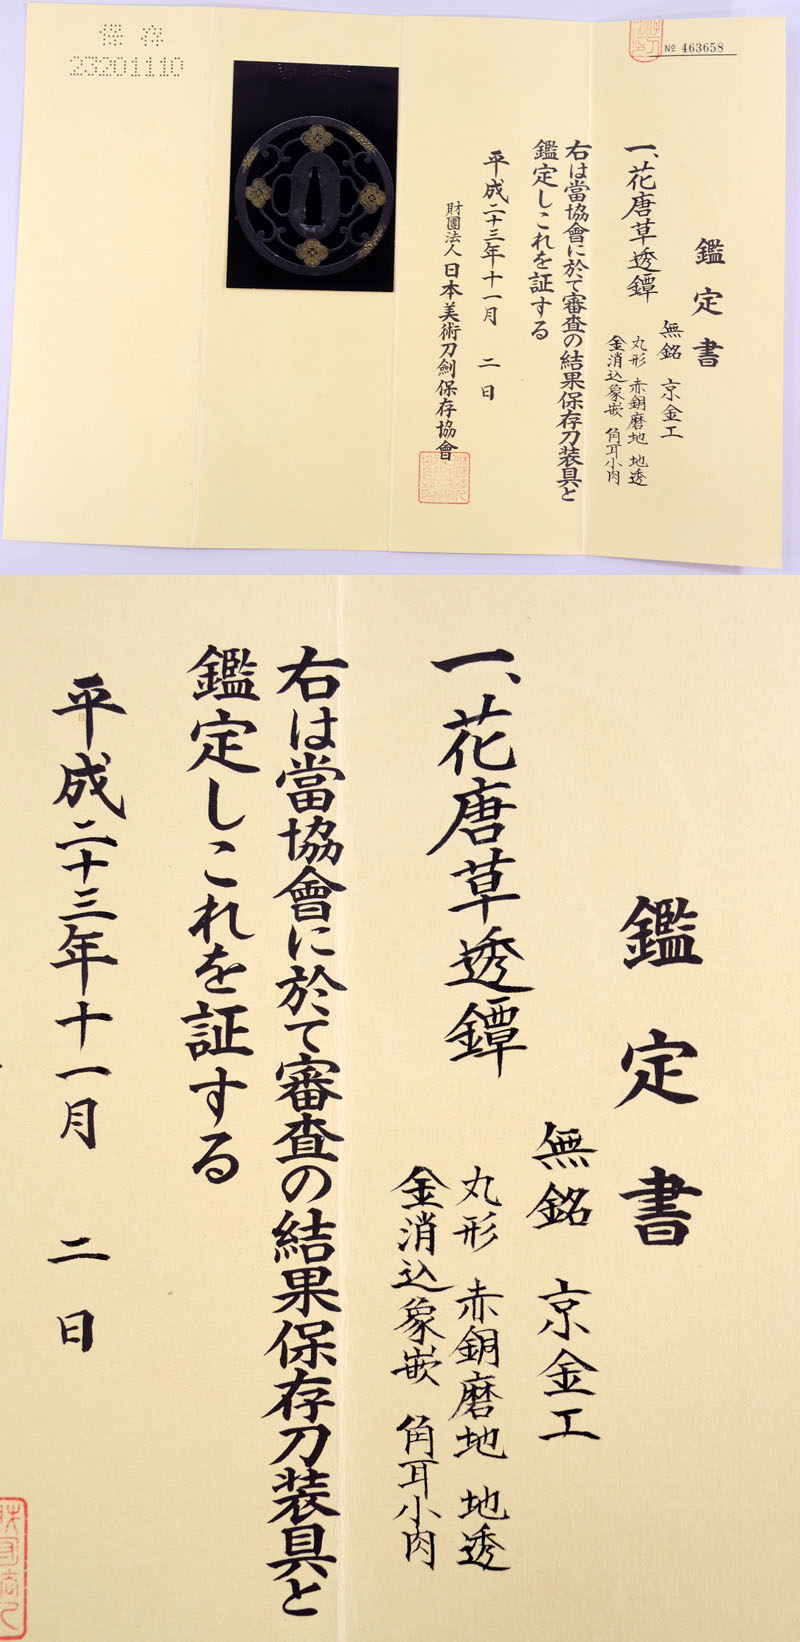 花唐草透鍔 無銘 京金工 Picture of Certificate